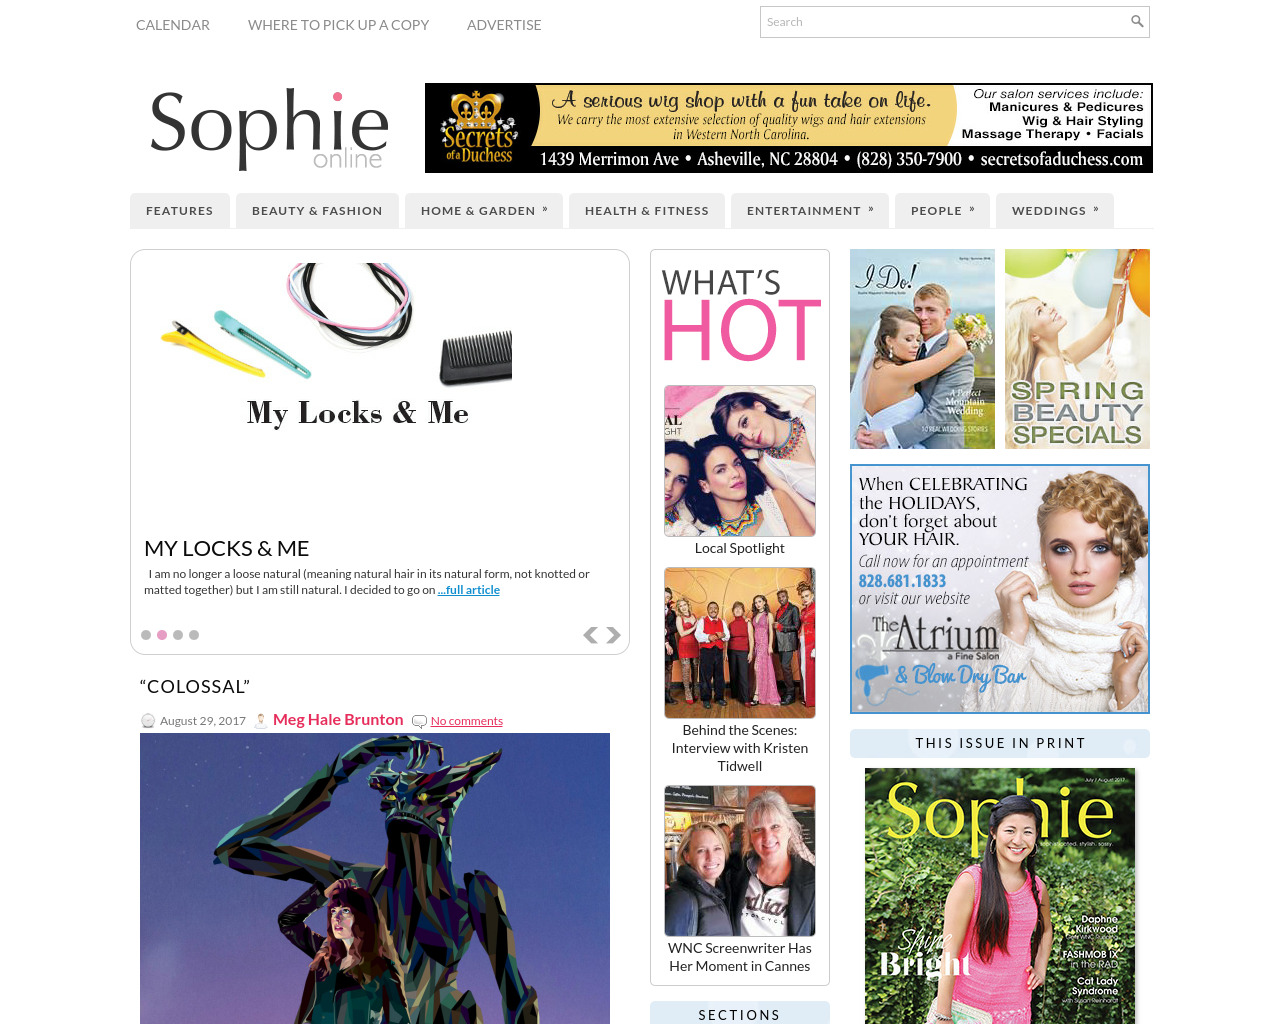 Sophie-Magazine-Advertising-Reviews-Pricing